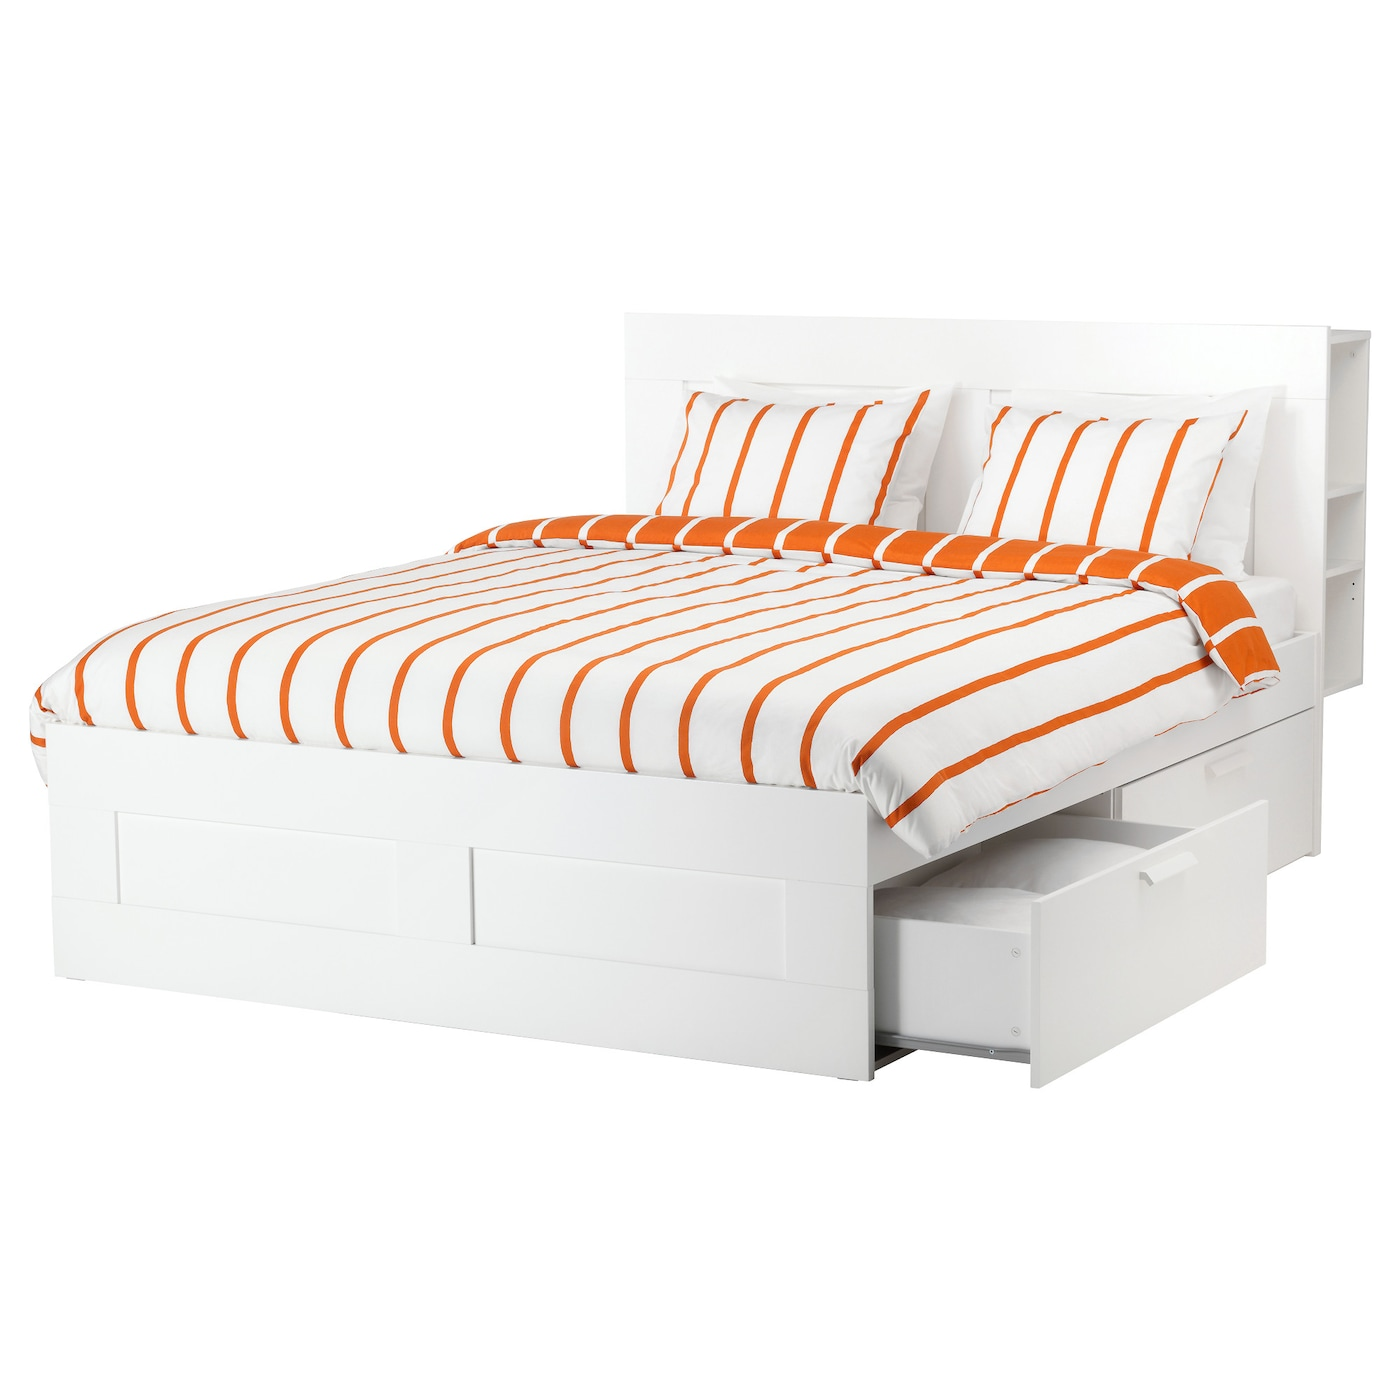 Ikea King Size White Bed Frame